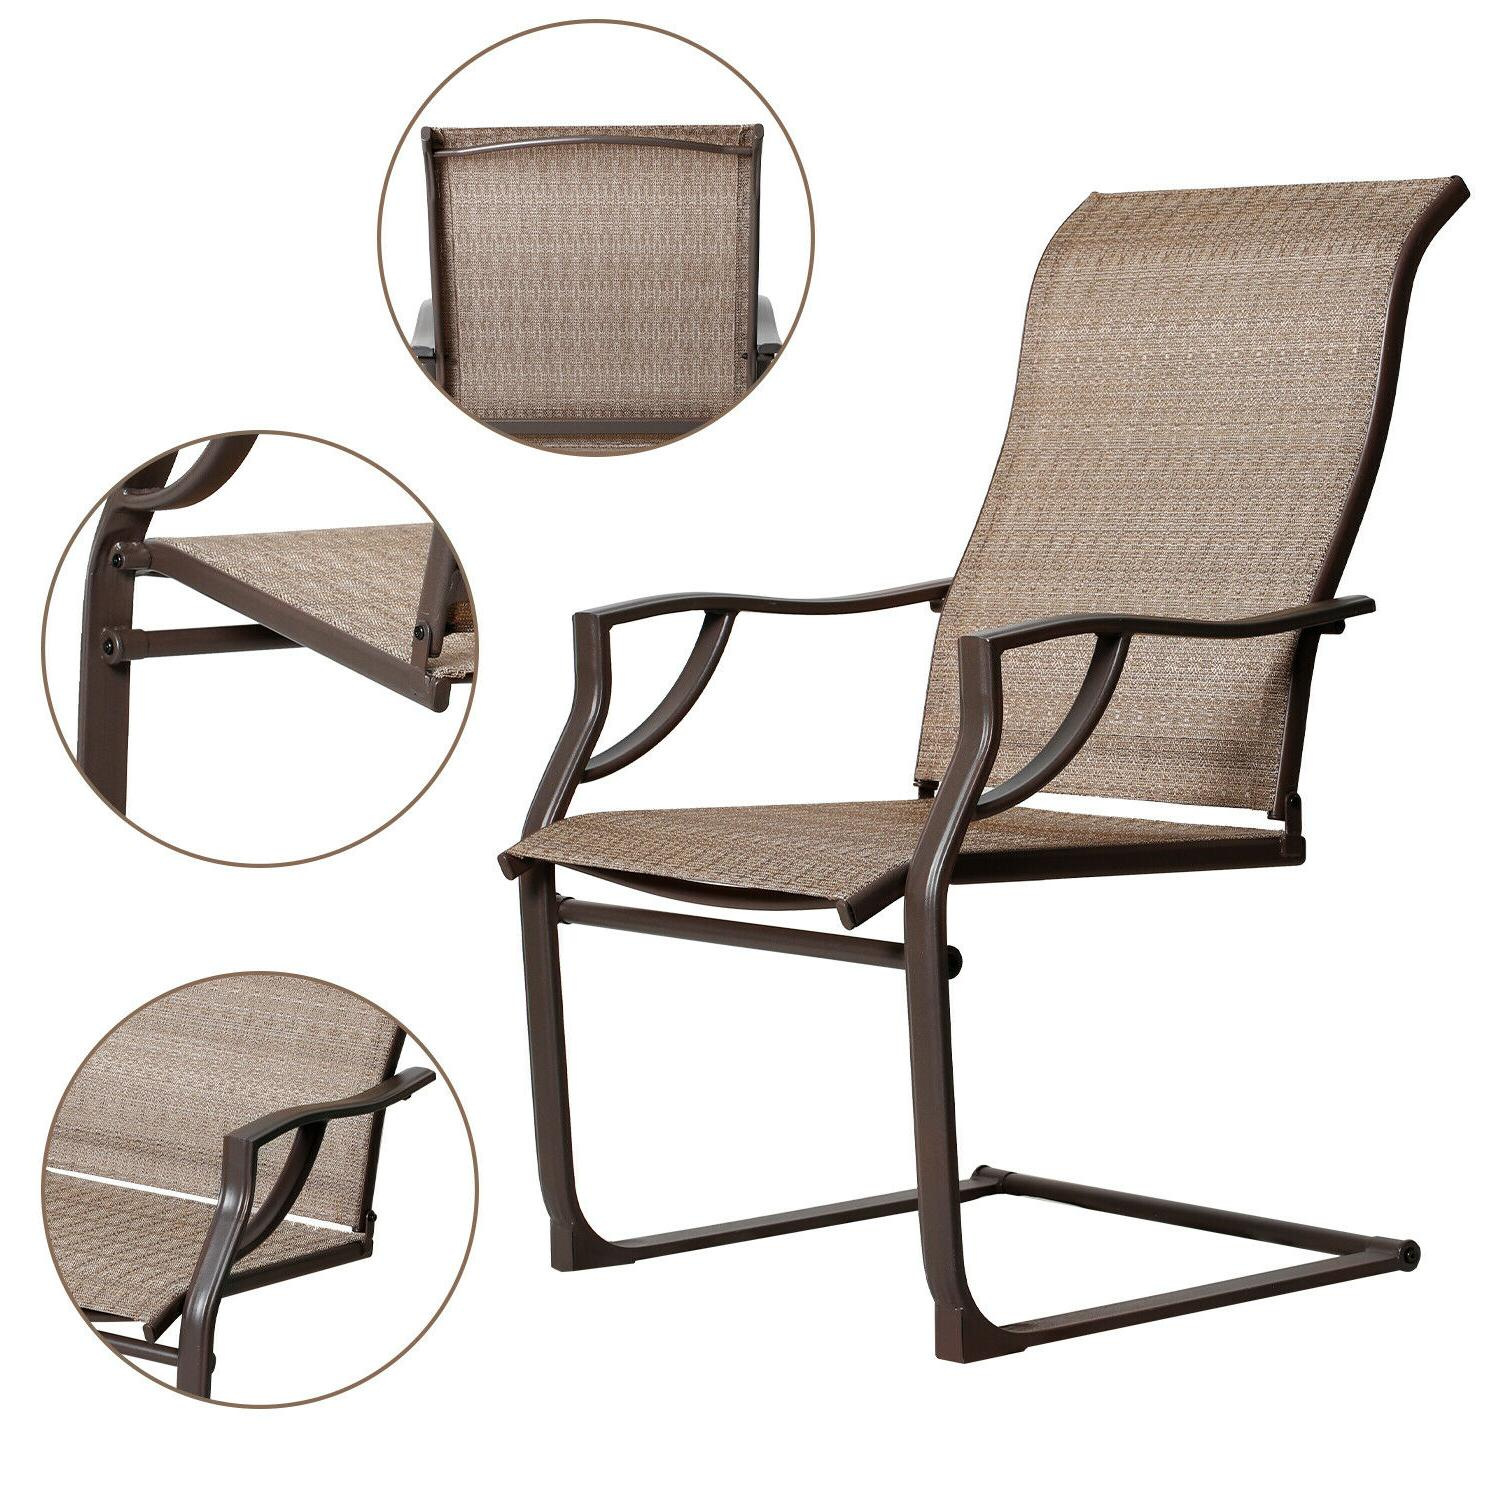 Bali Motion Patio Dining Chairs Lawn